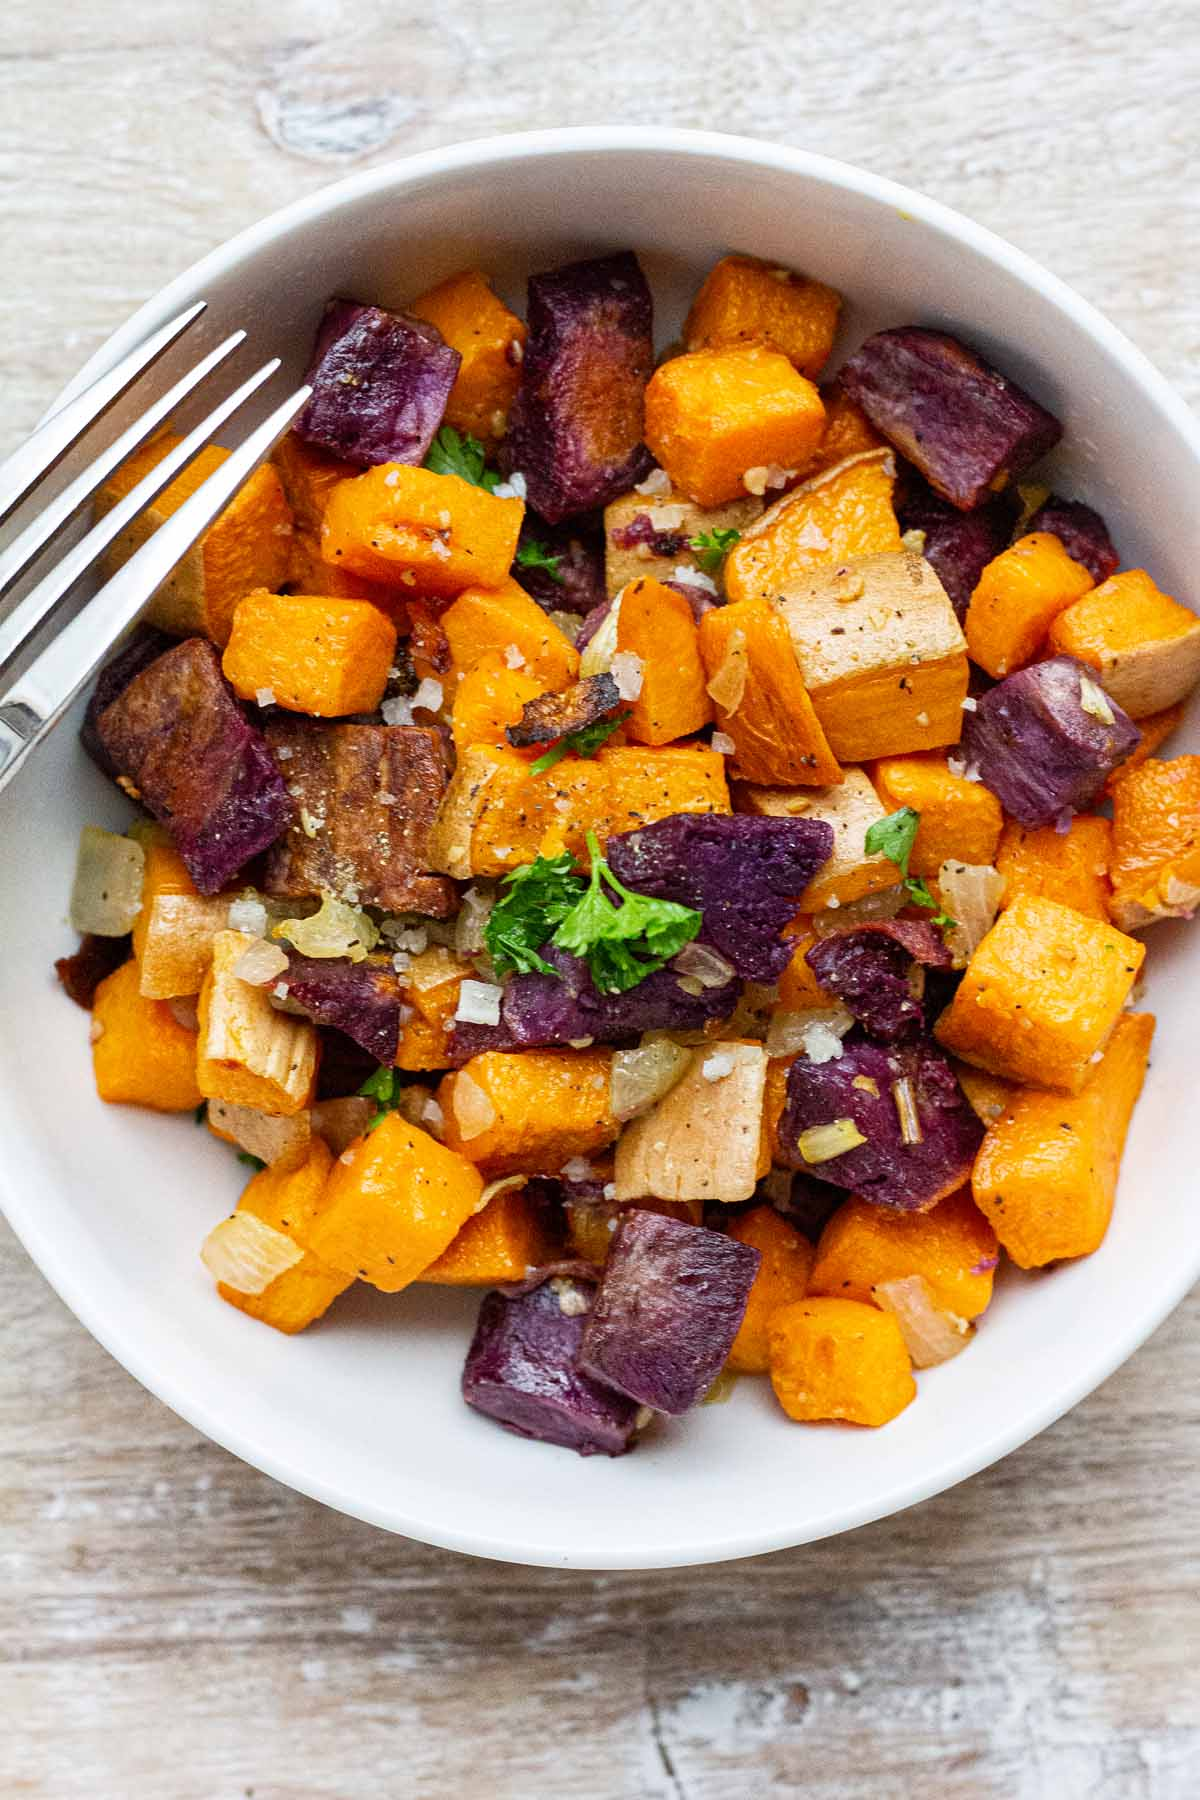 Broiled Sweet Potato Bites